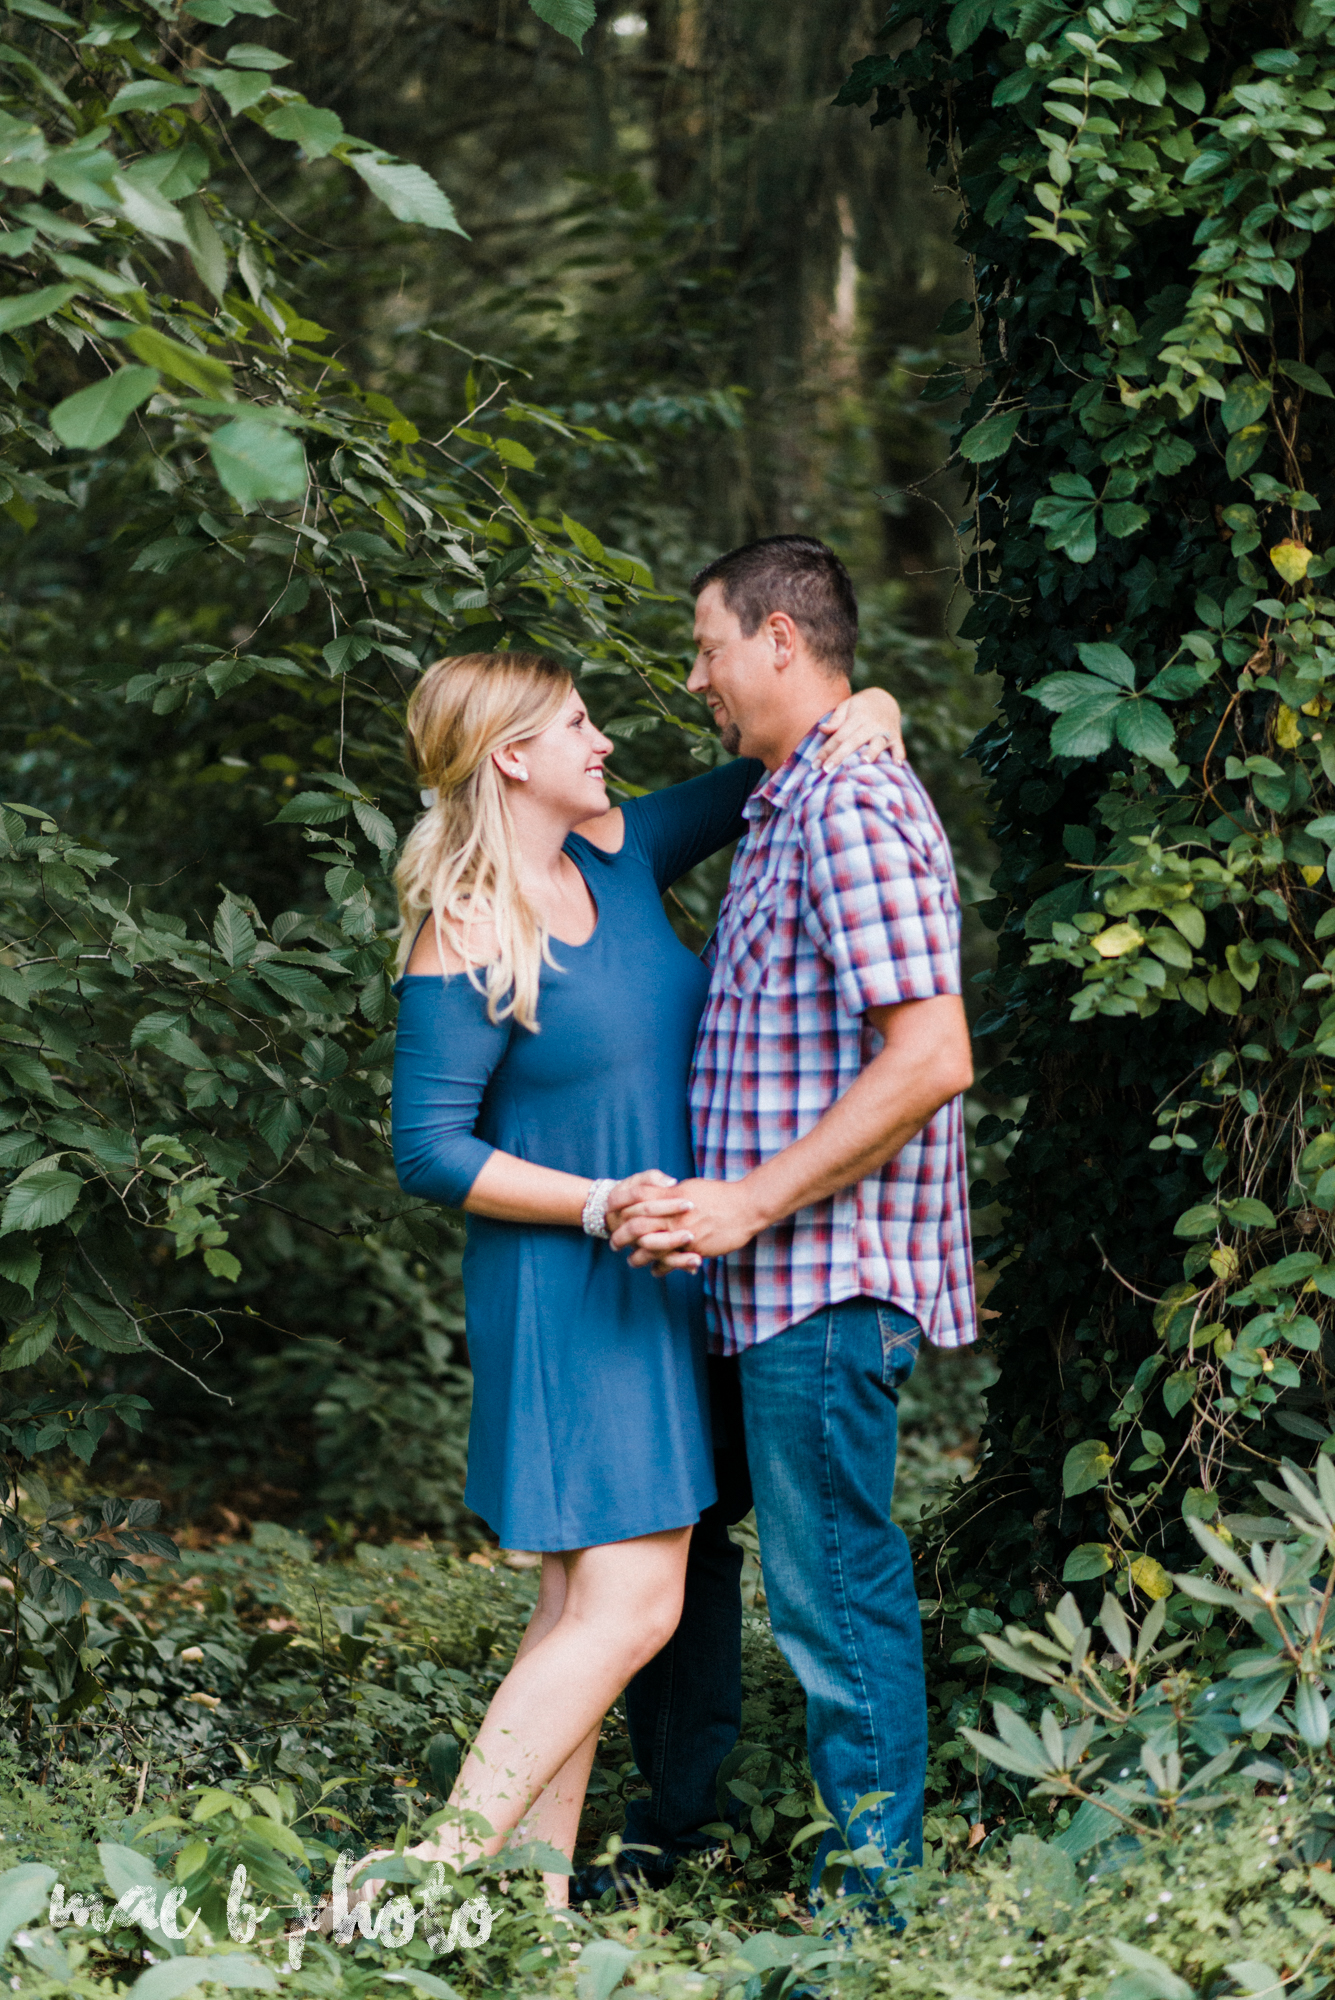 becca and rich's woodsy summer engagement session at ford nature center in mill creek park in youngstown ohio photographed by cleveland wedding photographer mae b photo-18.jpg